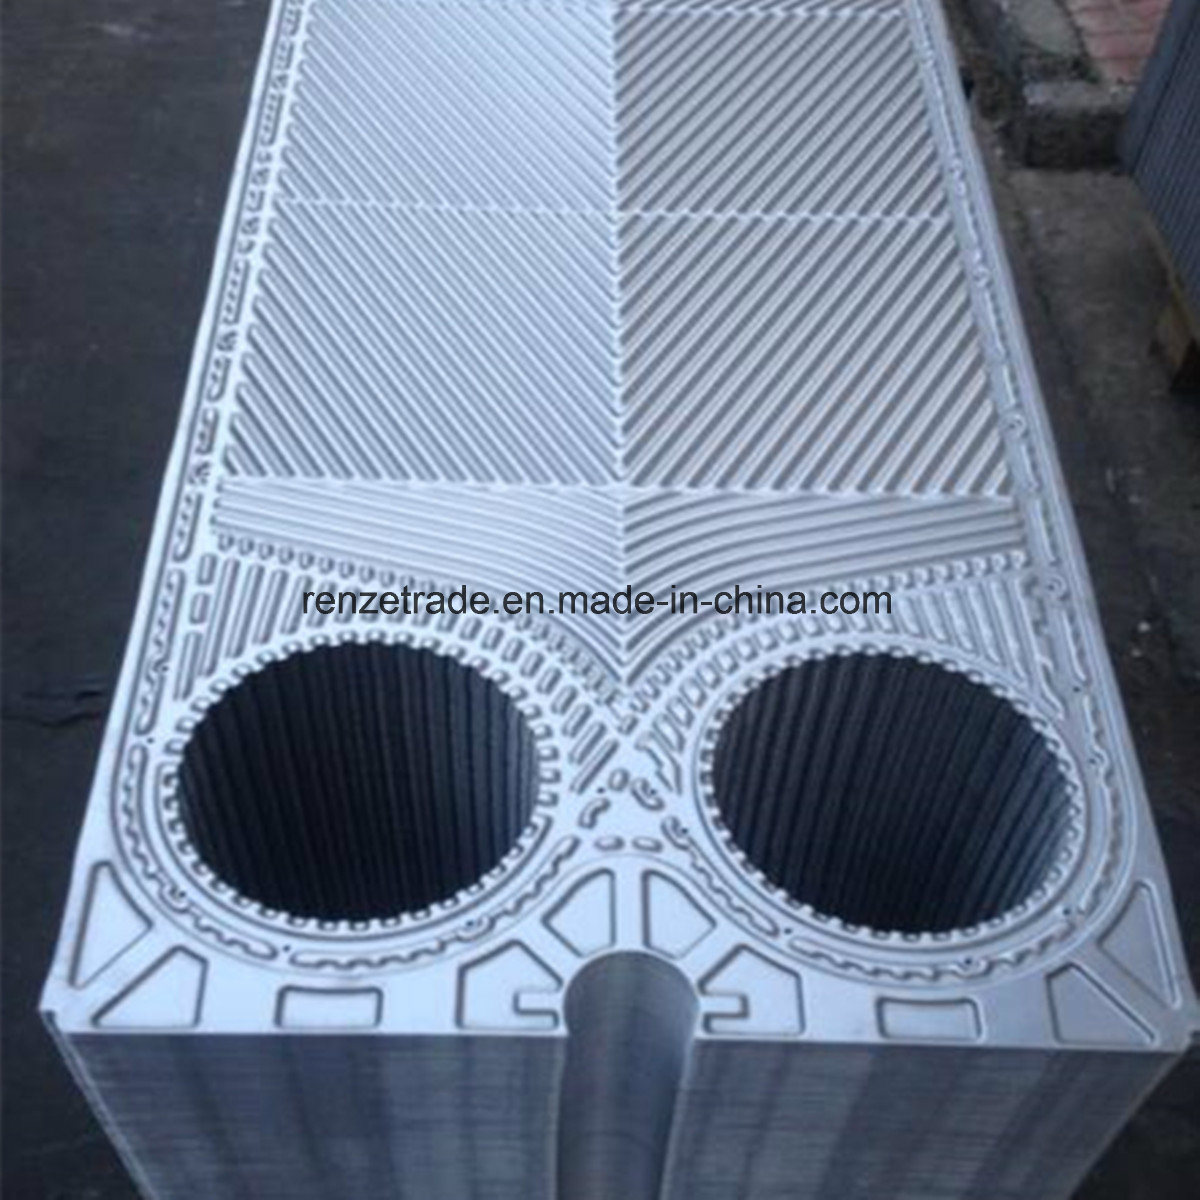 Titanium, Hastelloy High Temperature Resistance Plate for Alfa Laval Equivalent Plate